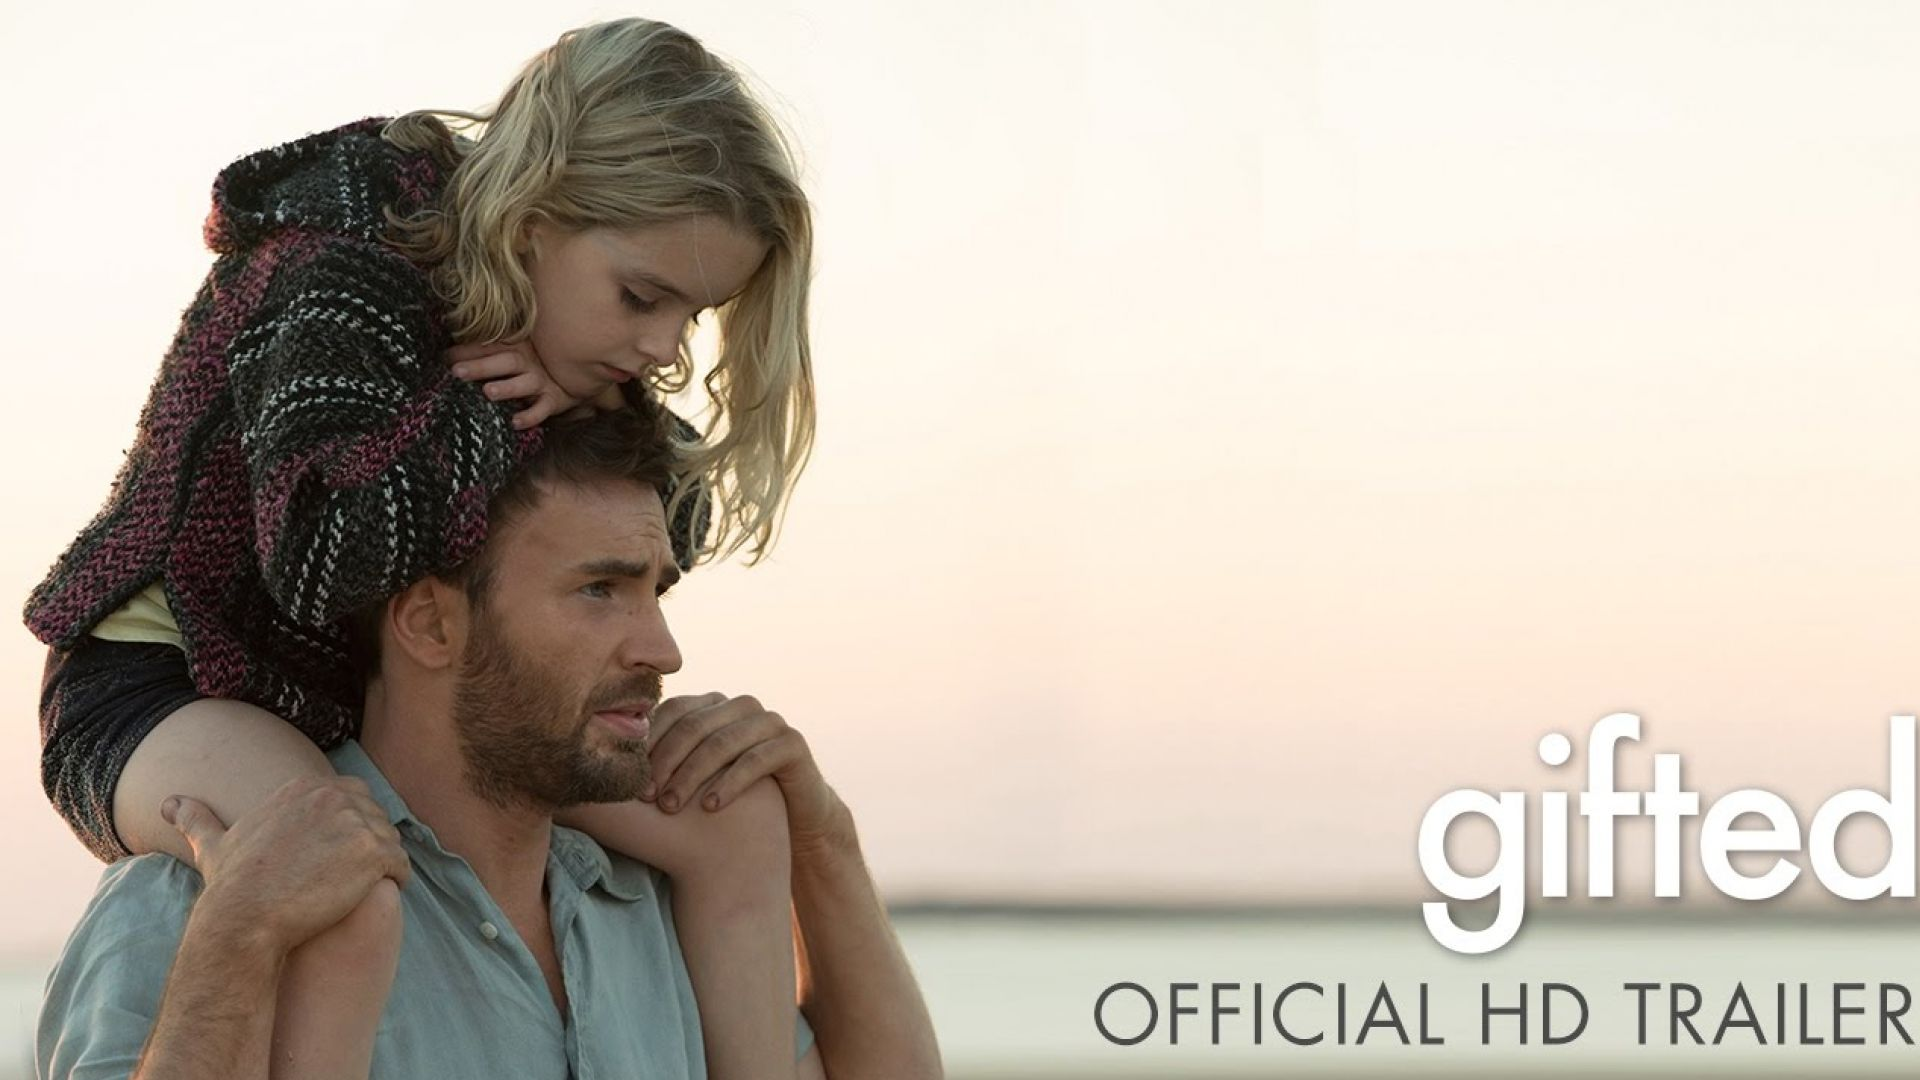 GIFTED: OFFICIAL HD TRAILER - CHRIS EVANS MOVIE